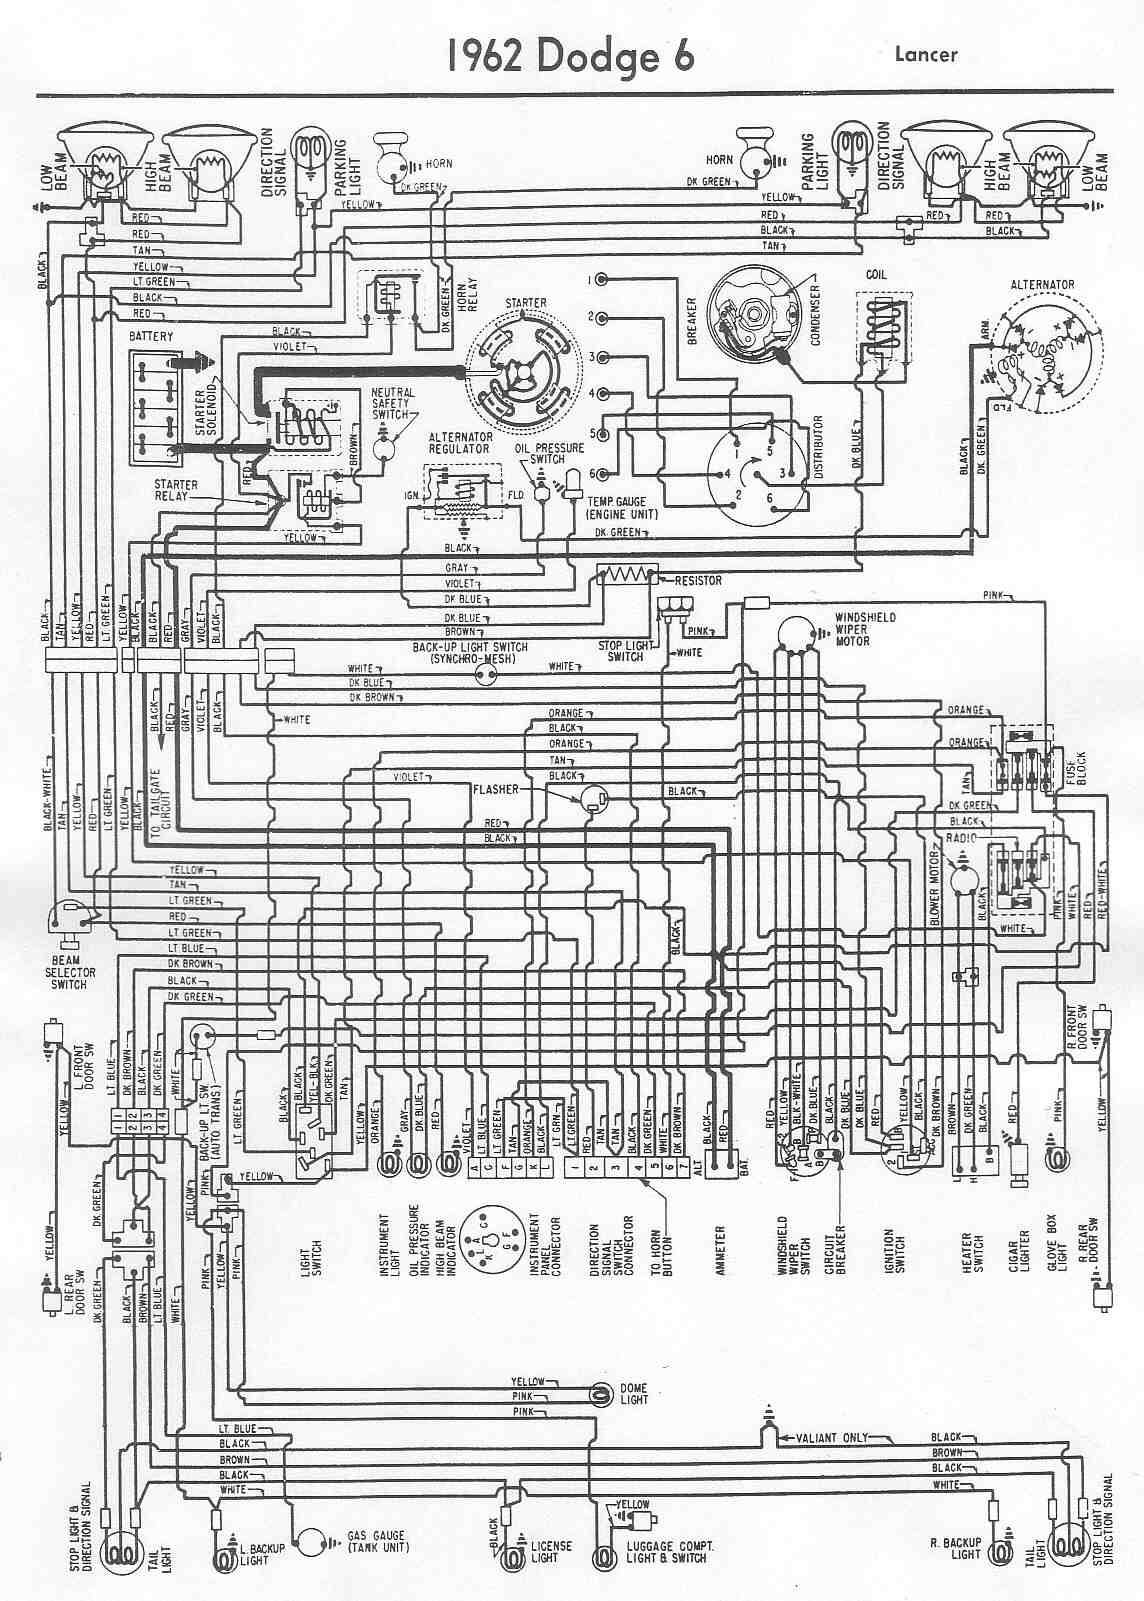 1994 Dodge Viper Wiring Diagram Product Diagrams 5704v For Alarm Car Manuals Pdf Fault Codes Rh Automotive Net Remote Start